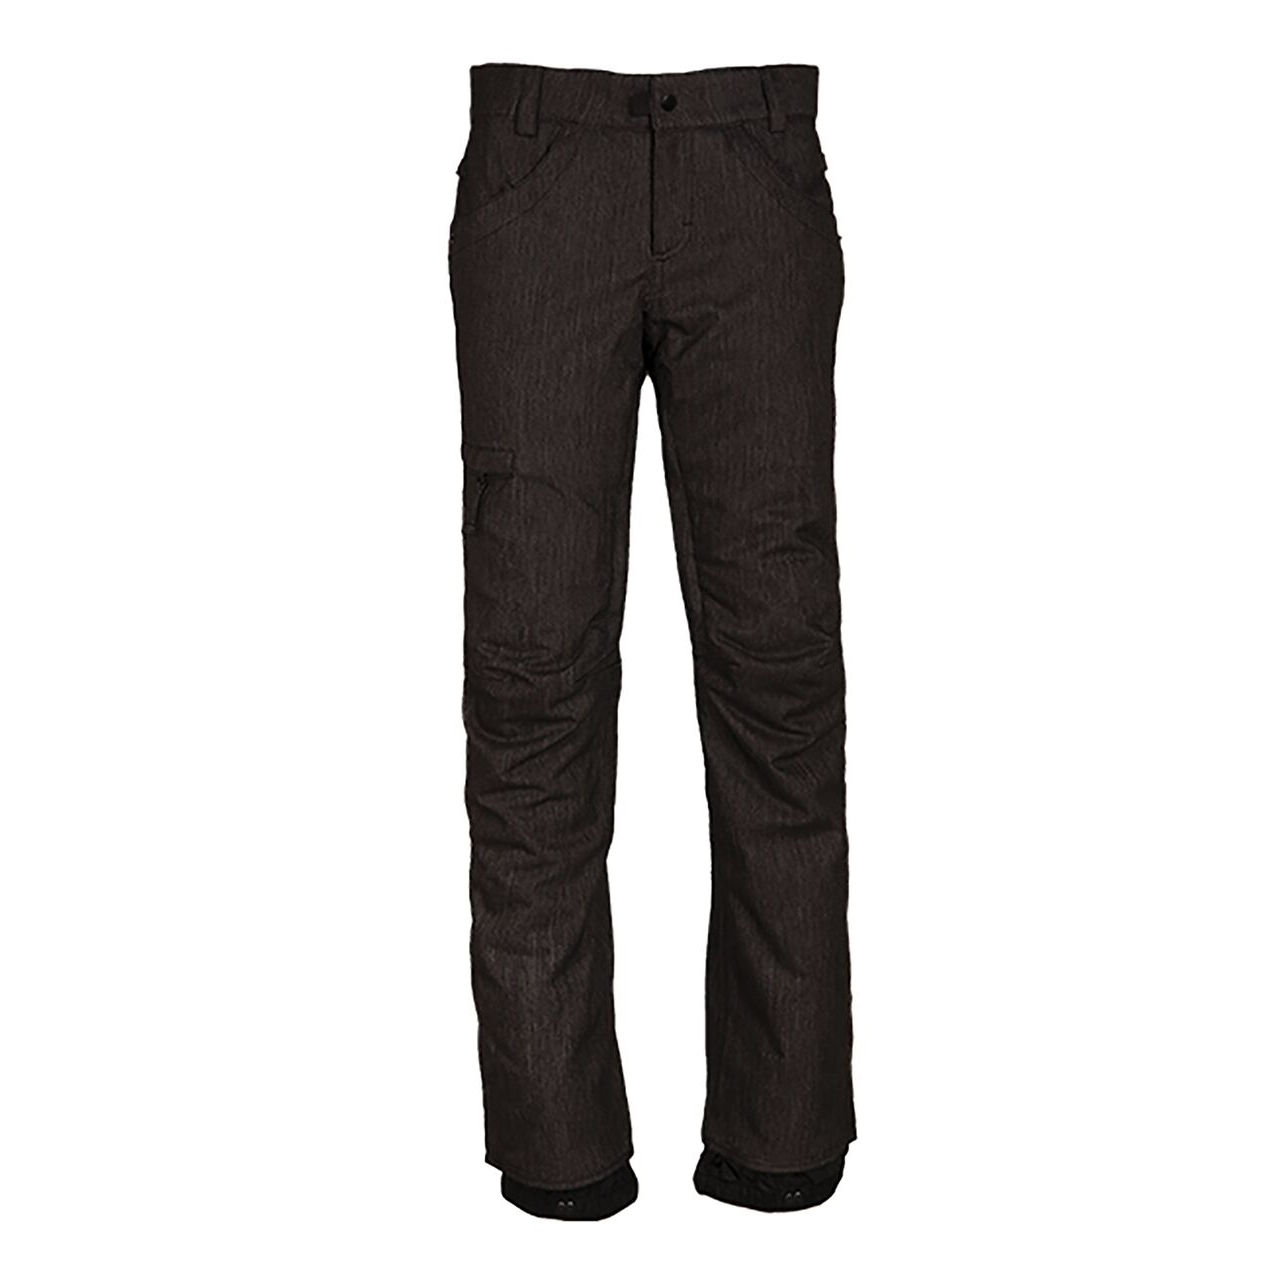 Штаны женские 686 Patron Insulated Pant-Tall 17/18